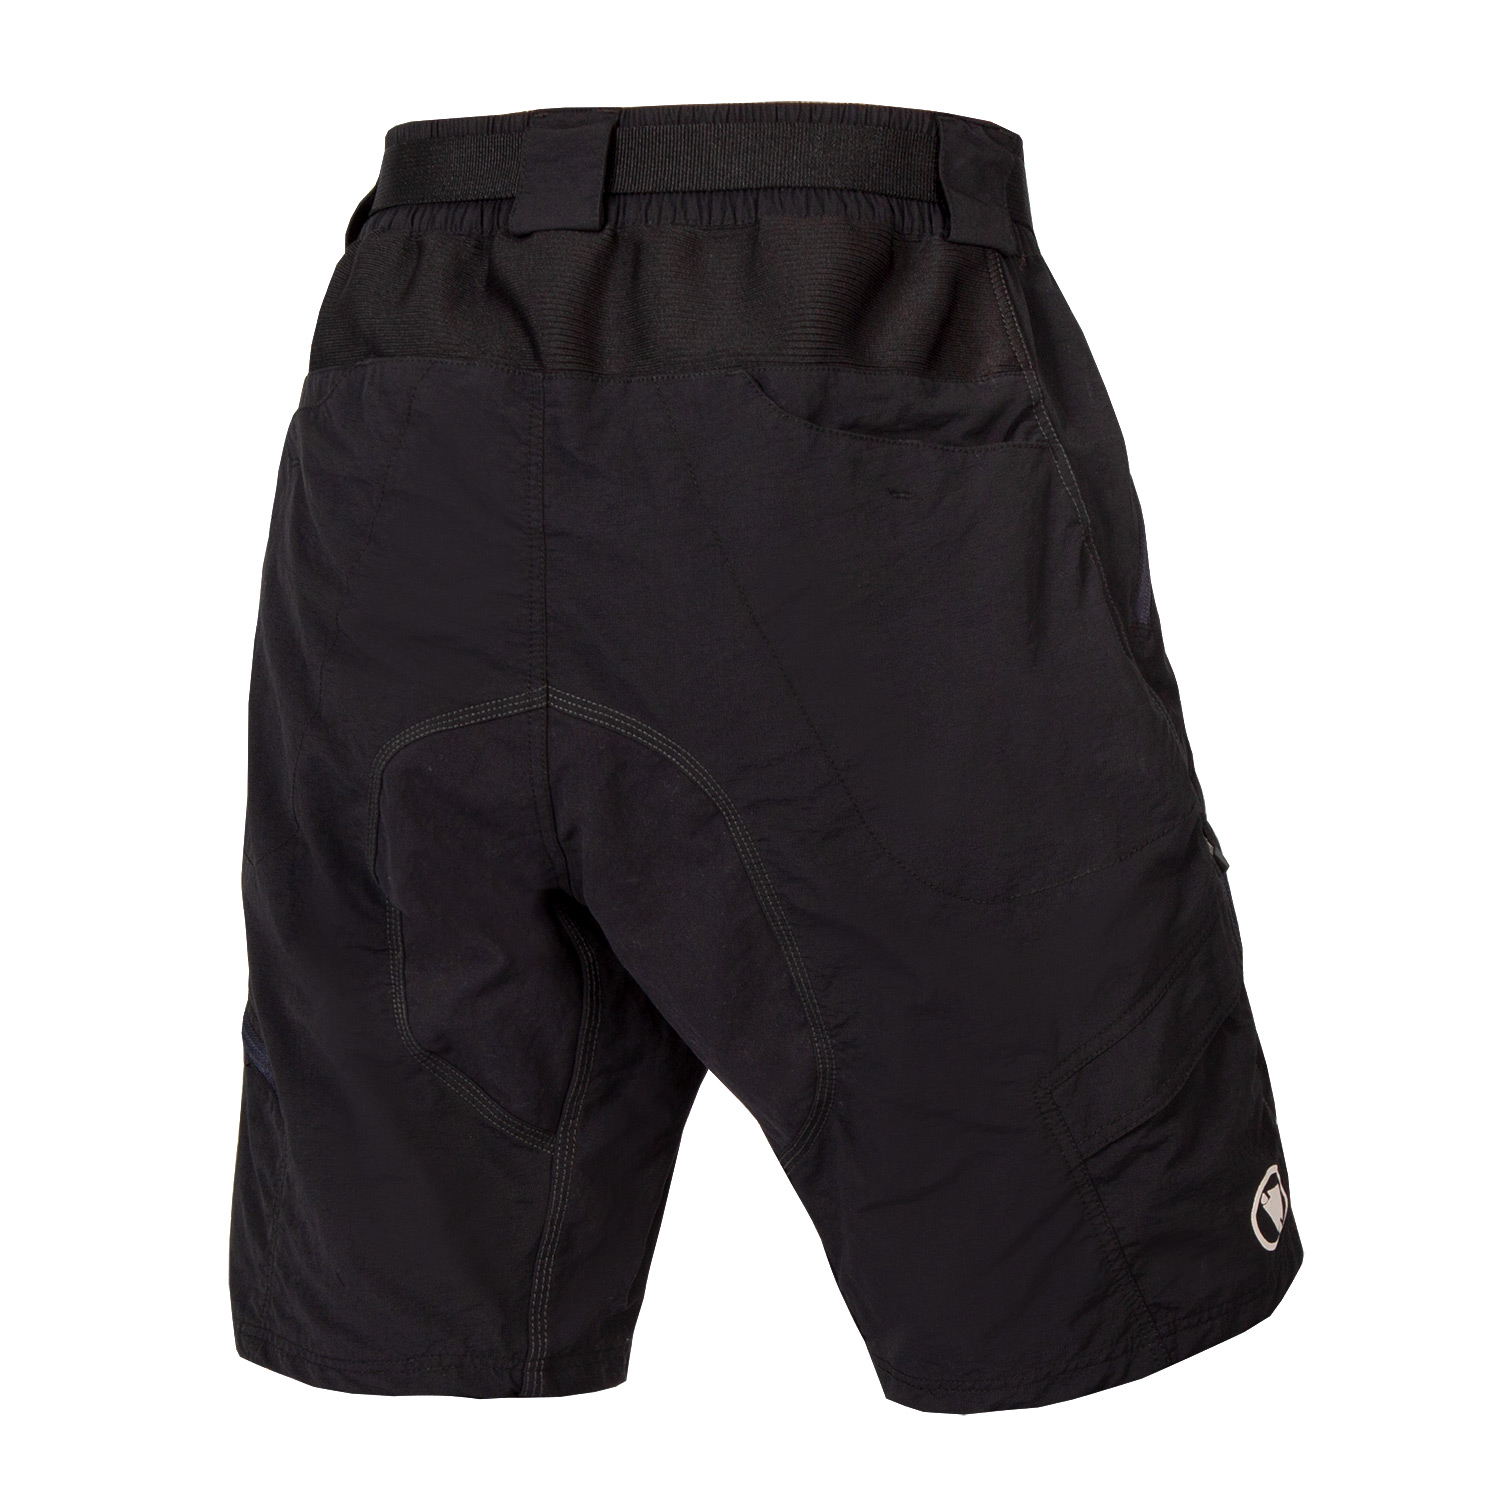 Women's Hummvee Short II Black